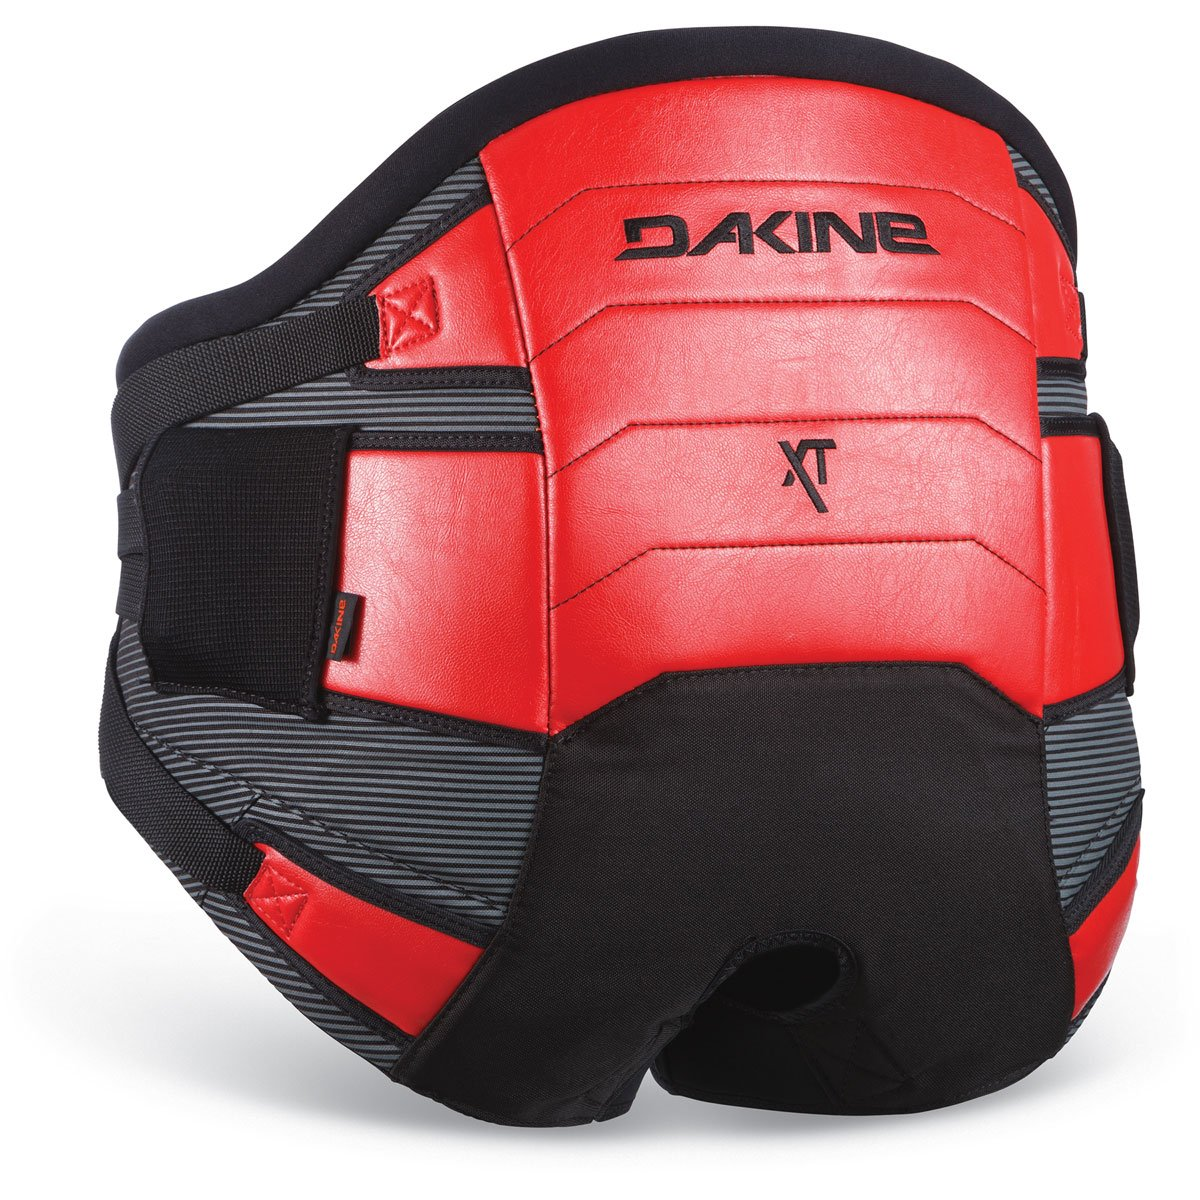 Dakine Men's XT Seat Windsurf Harness, Red, M